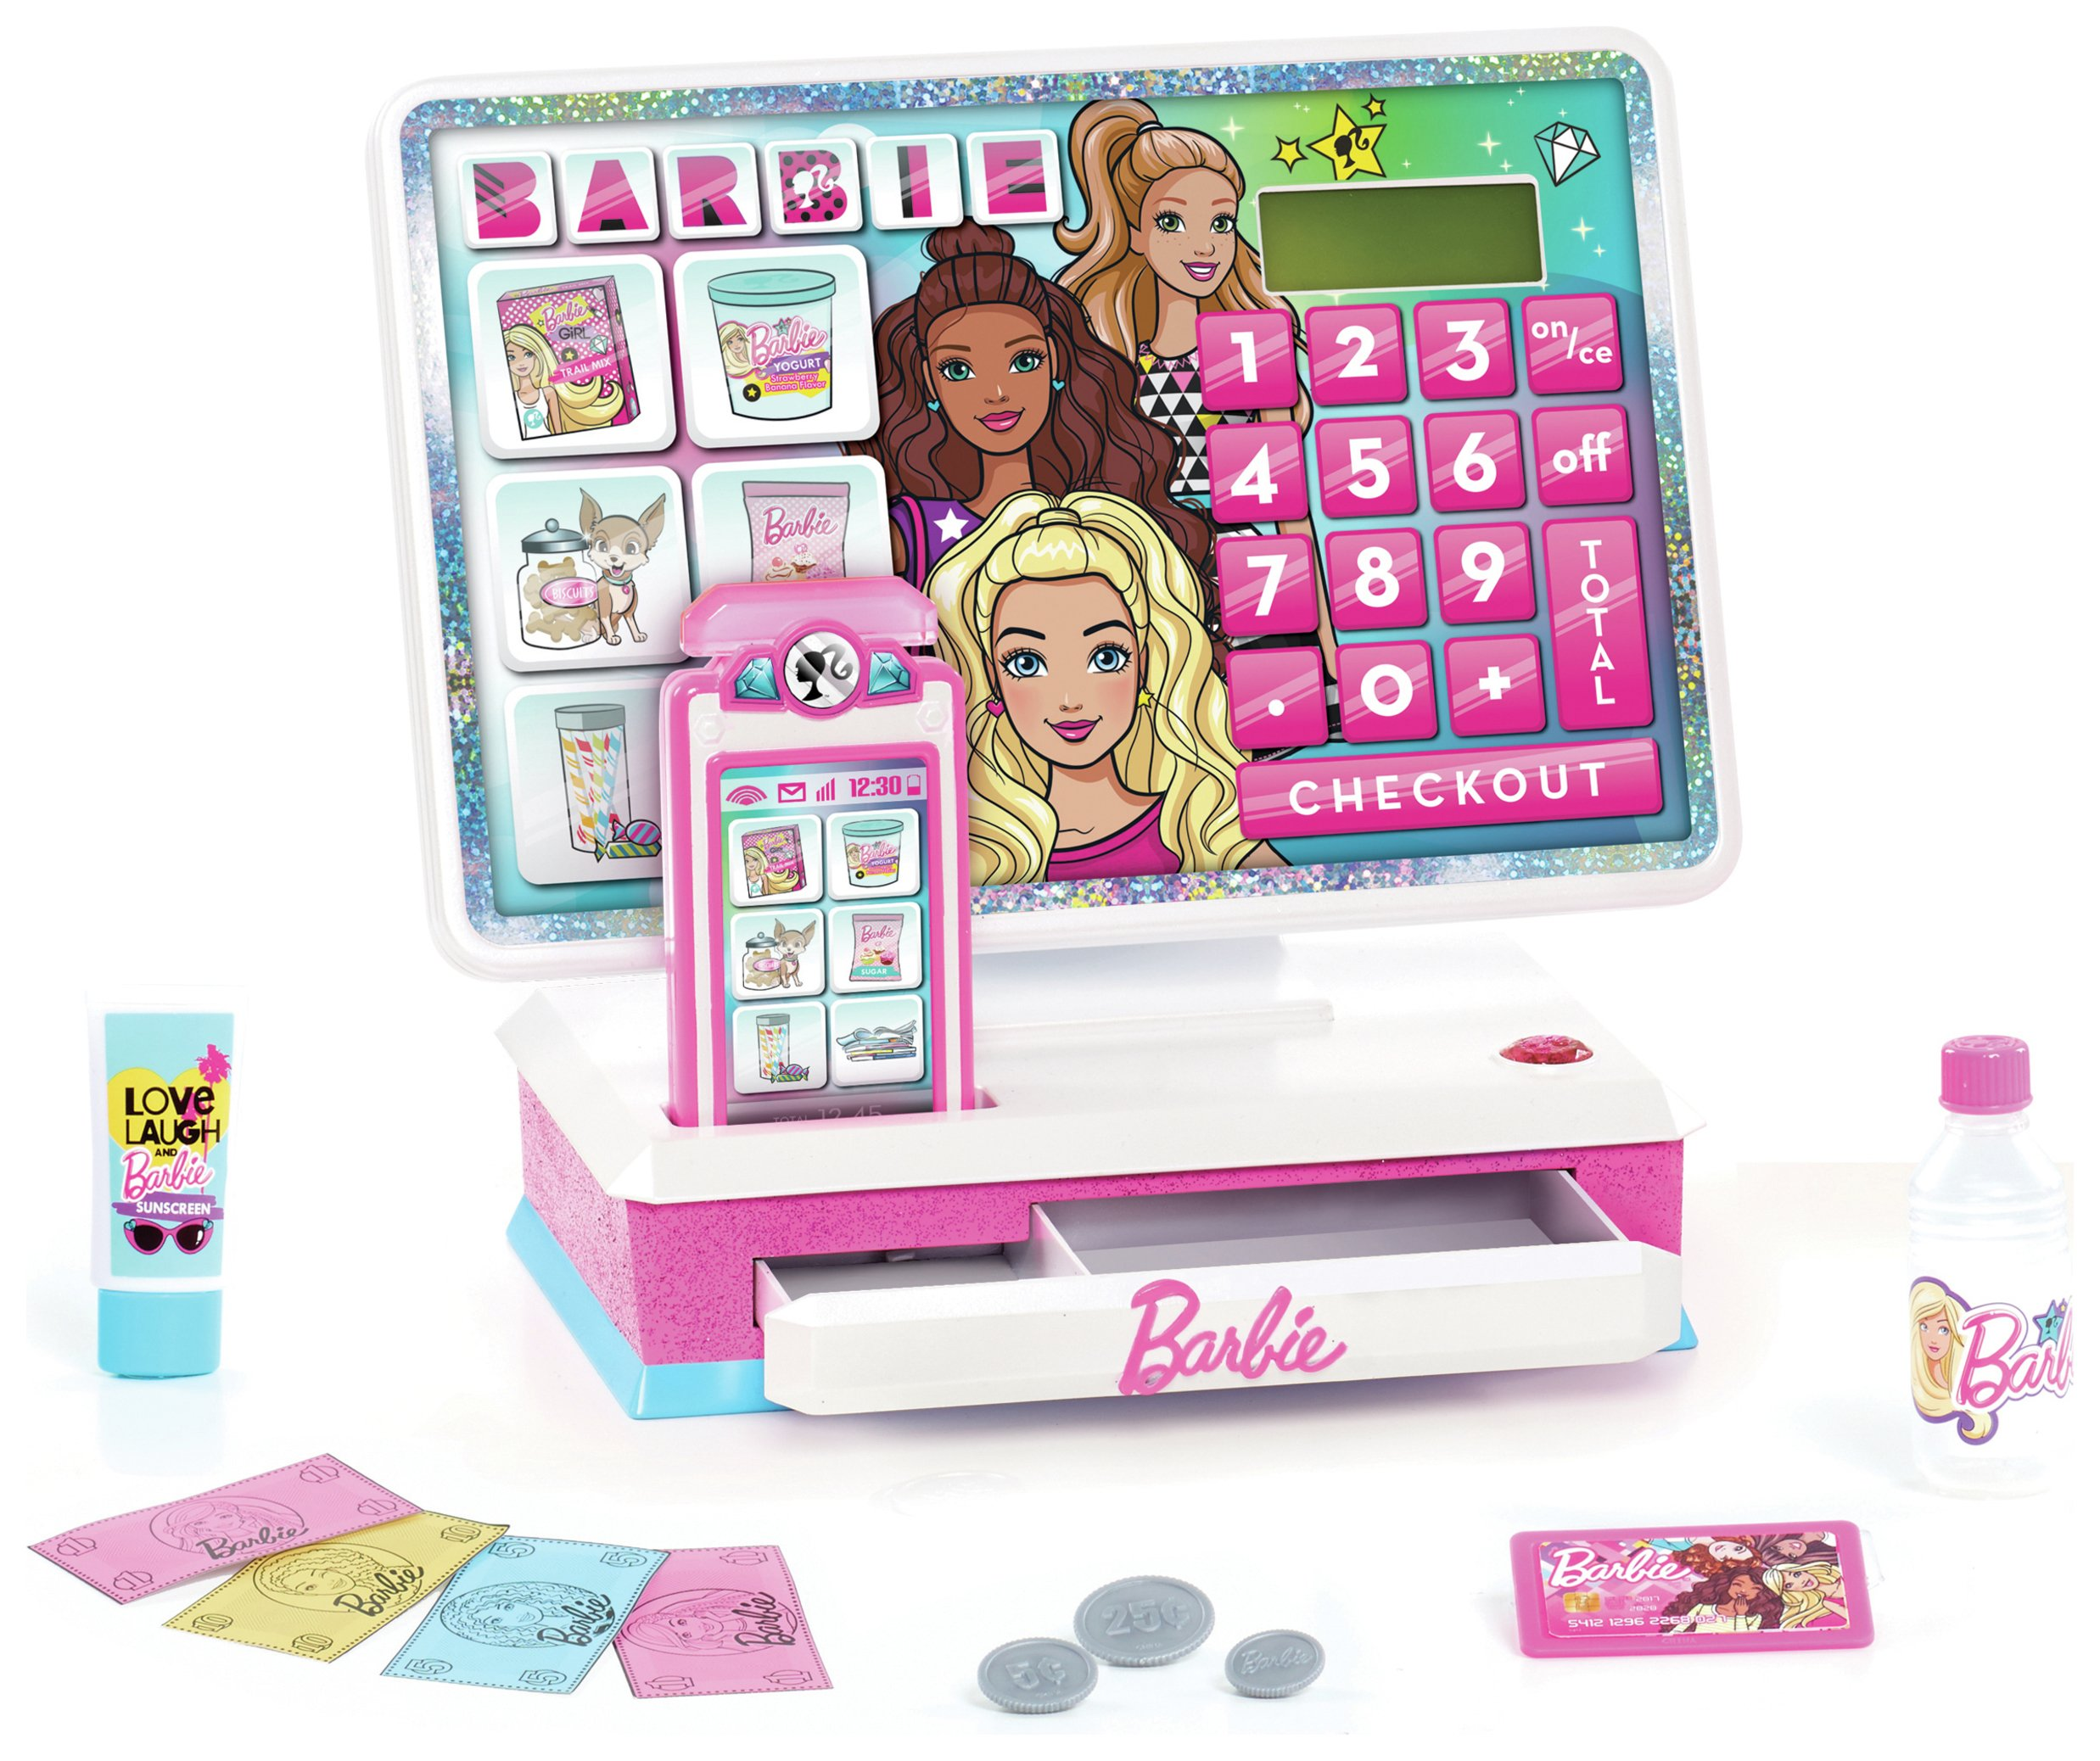 Barbie Deluxe Cash Register.